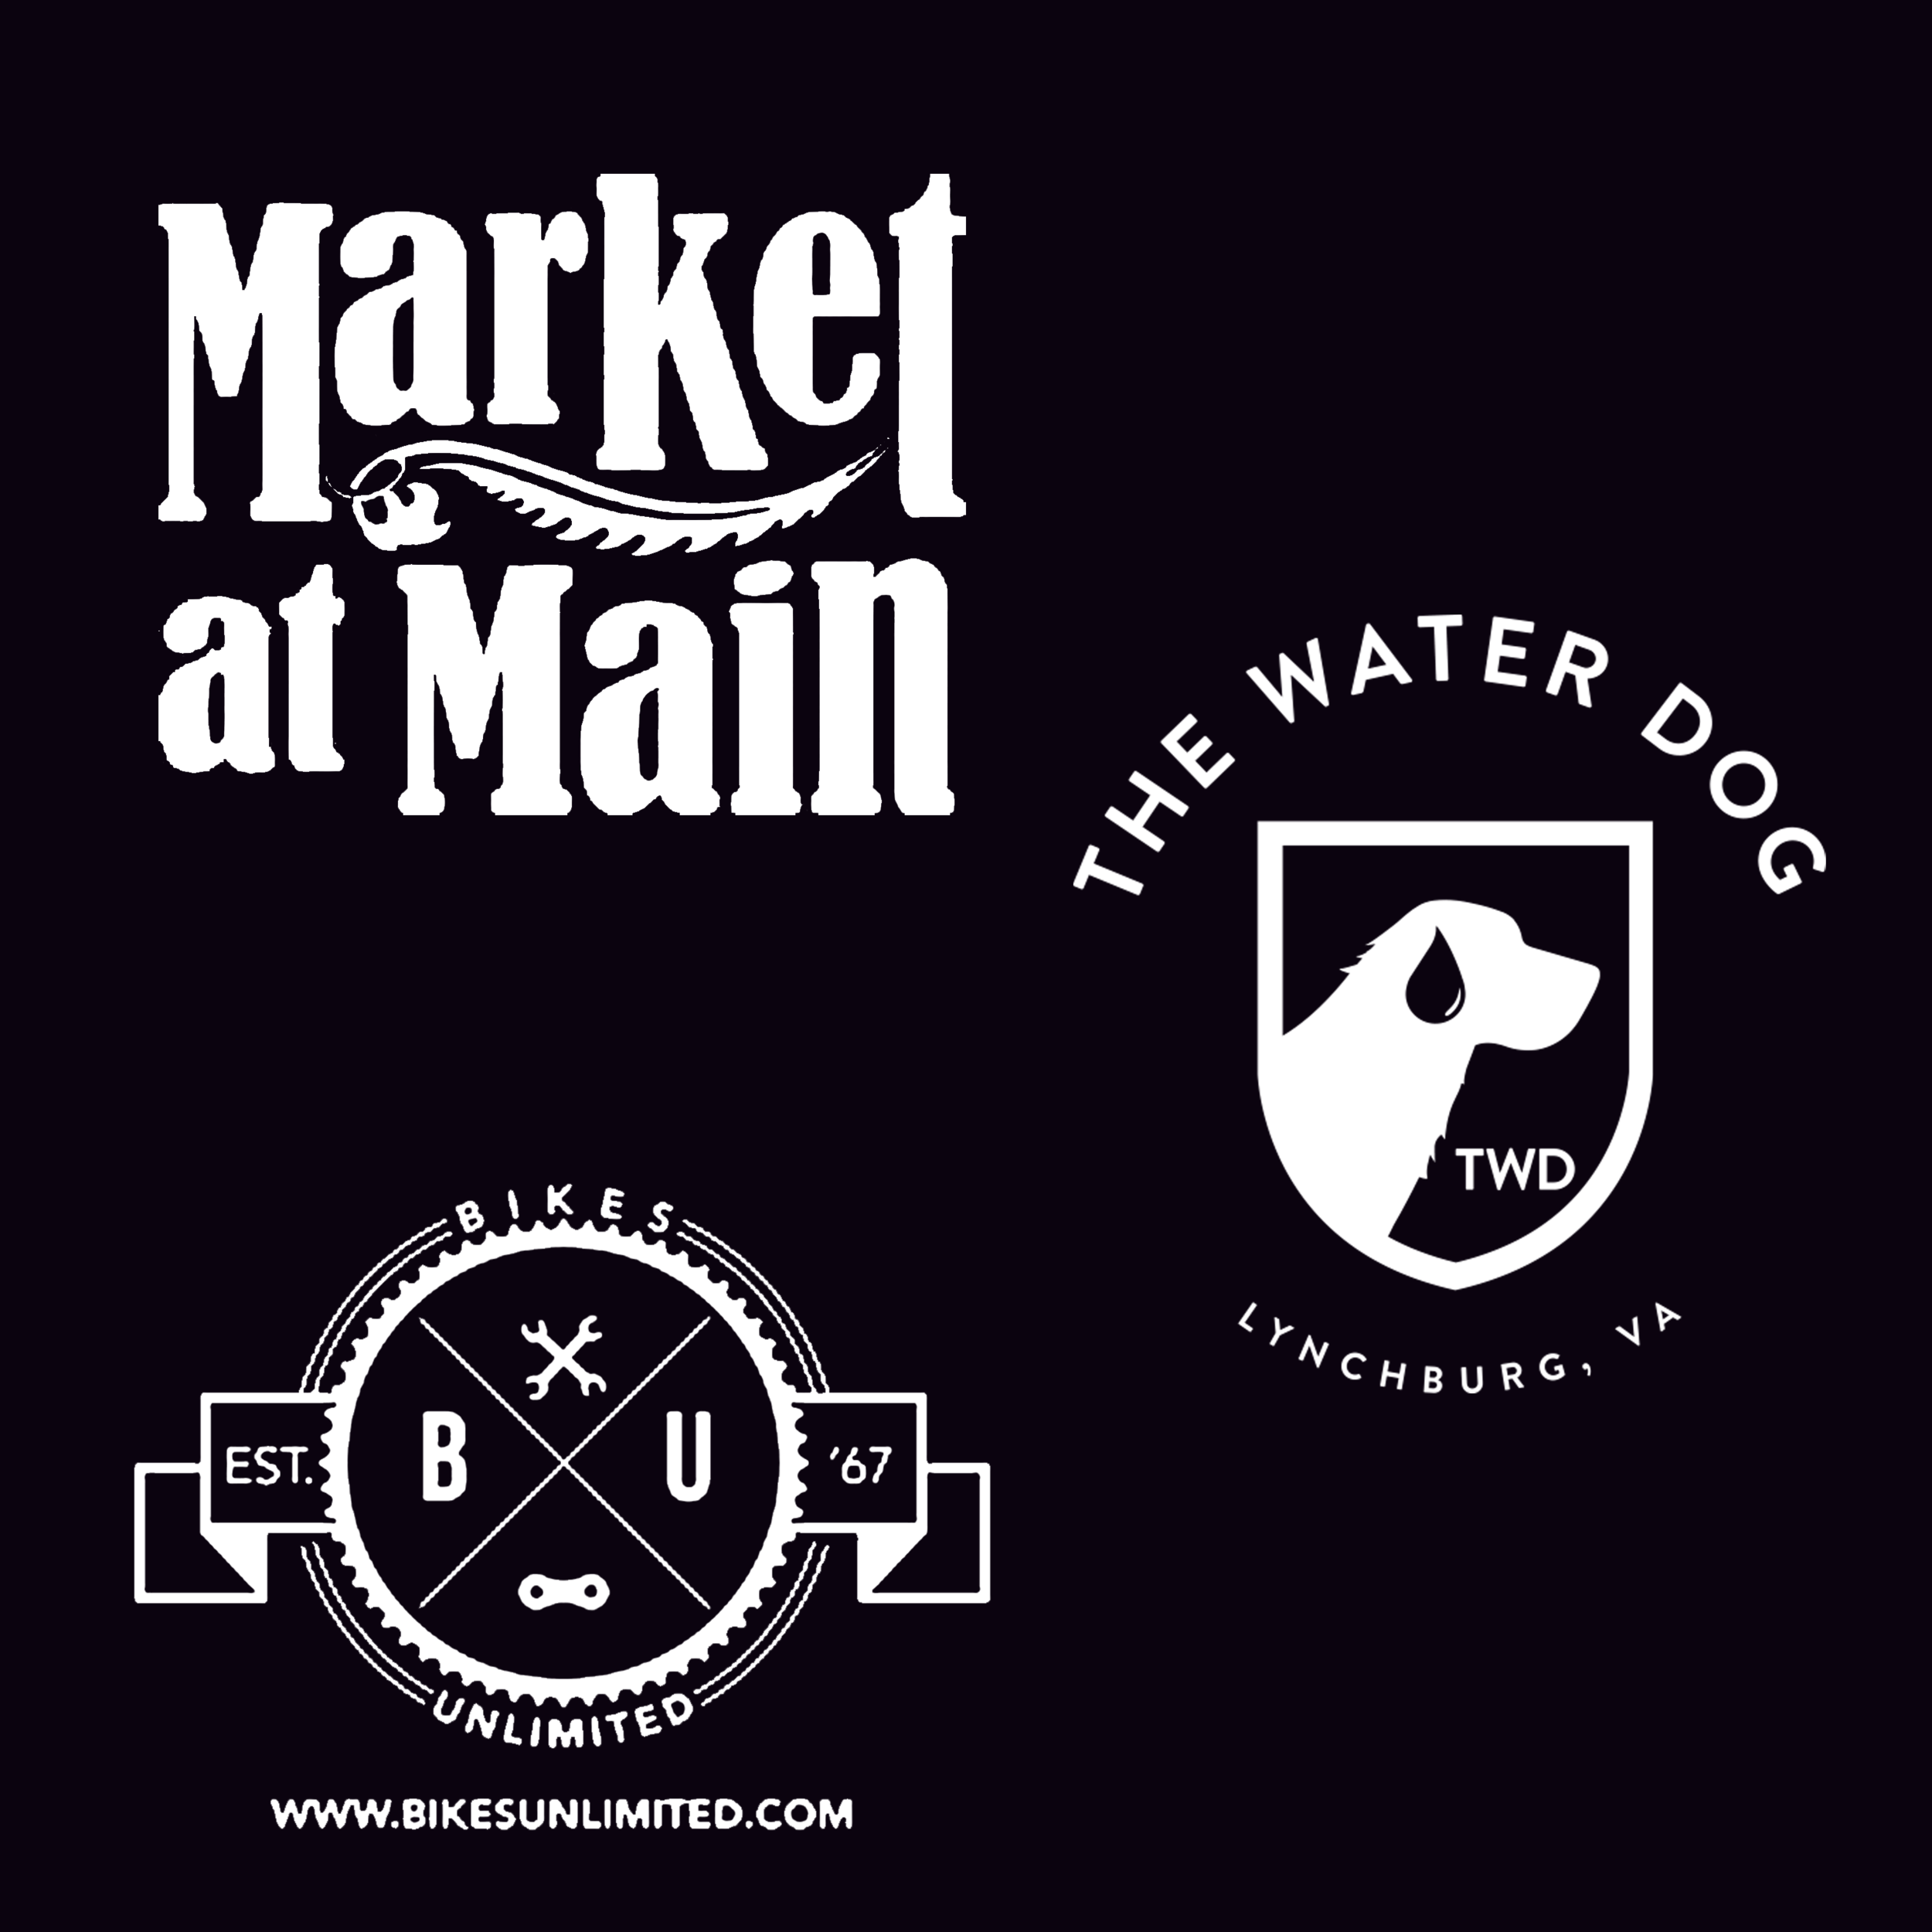 """""""Get Downtown"""" - Market at Main - $50.00 gift certificate and t-shirtWaterdog - $50.00 gift cardFour (4) Bikes Unlimited gift cards"""